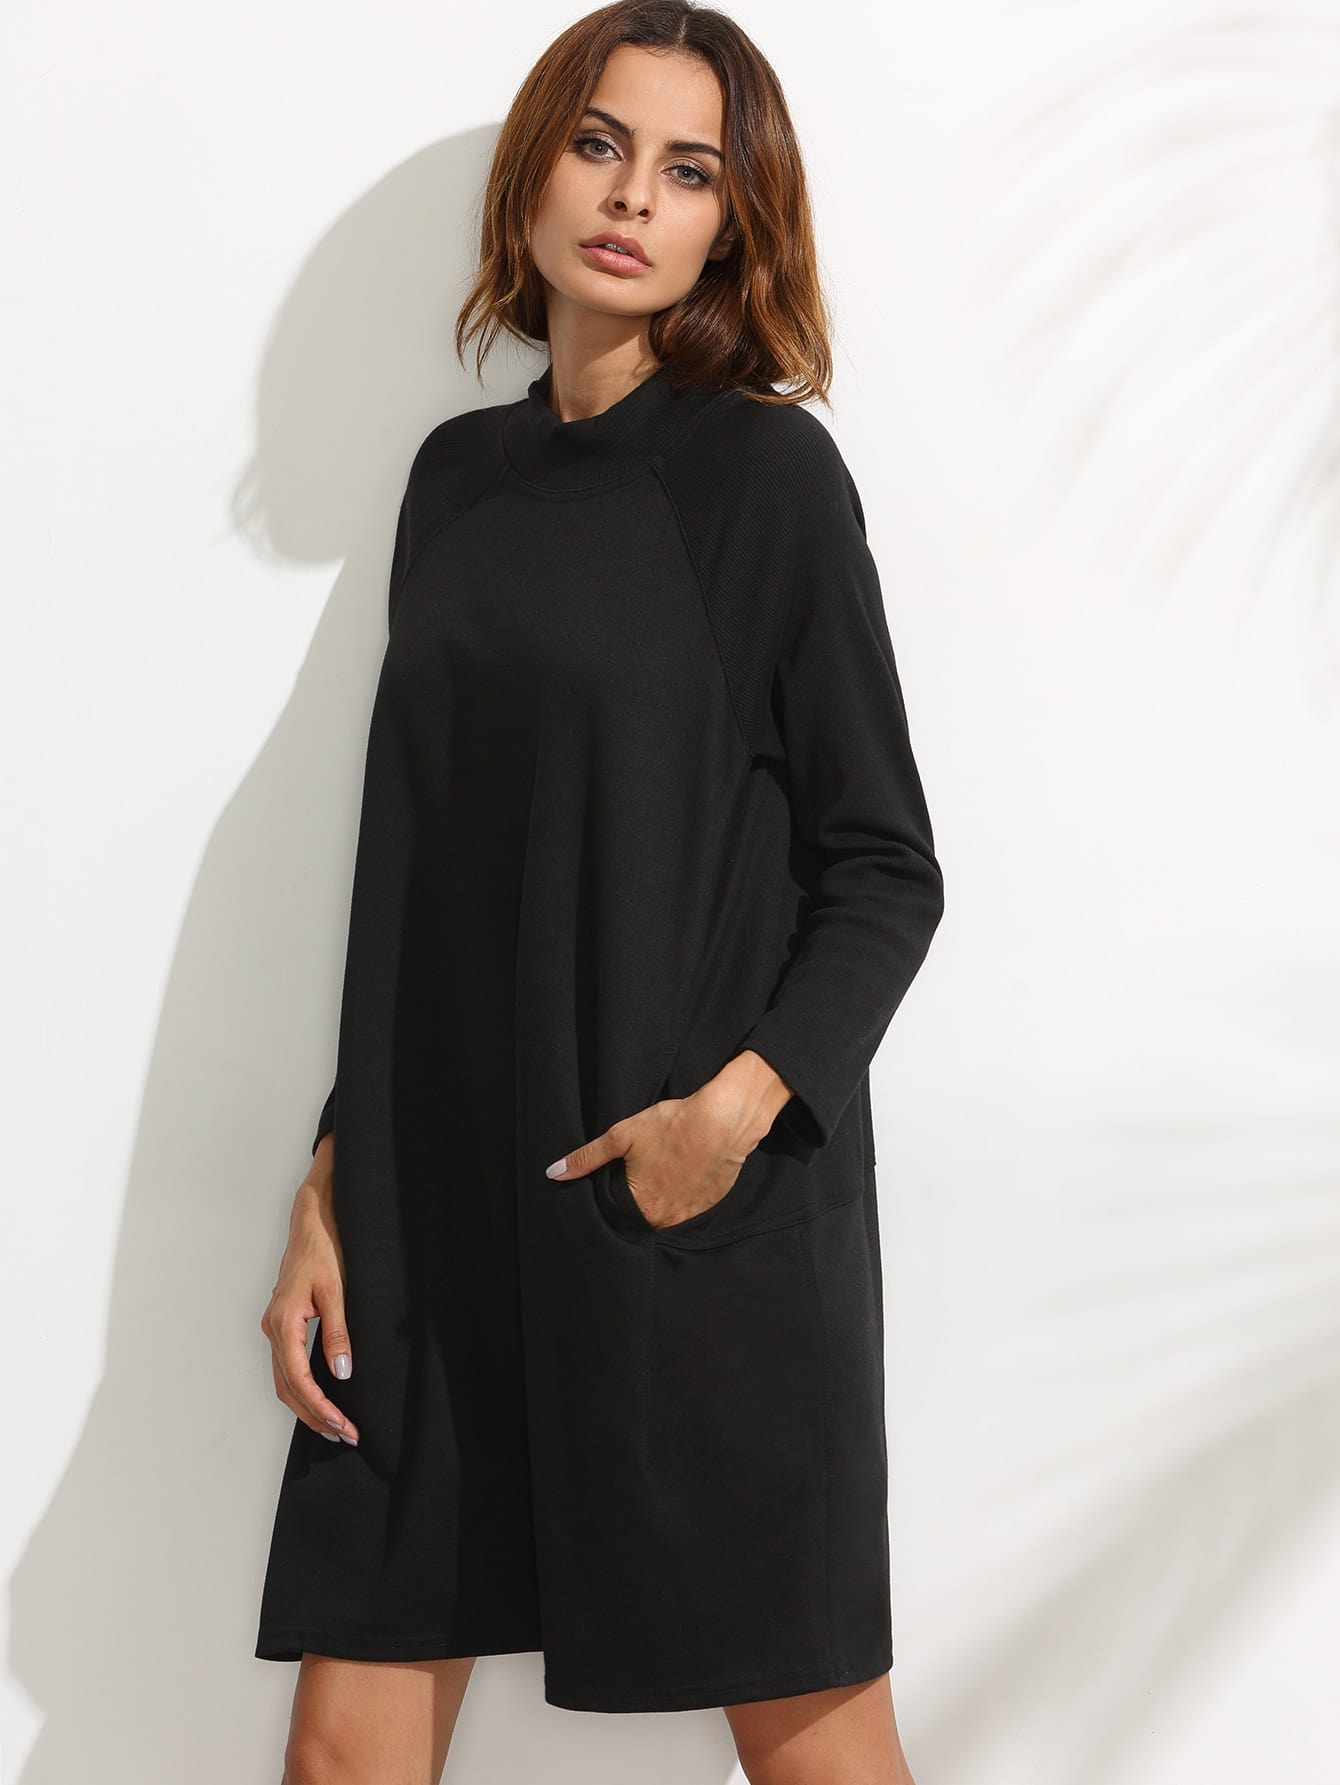 Black Ribbed Raglan Sleeve Sweatshirt Dress dress160708113